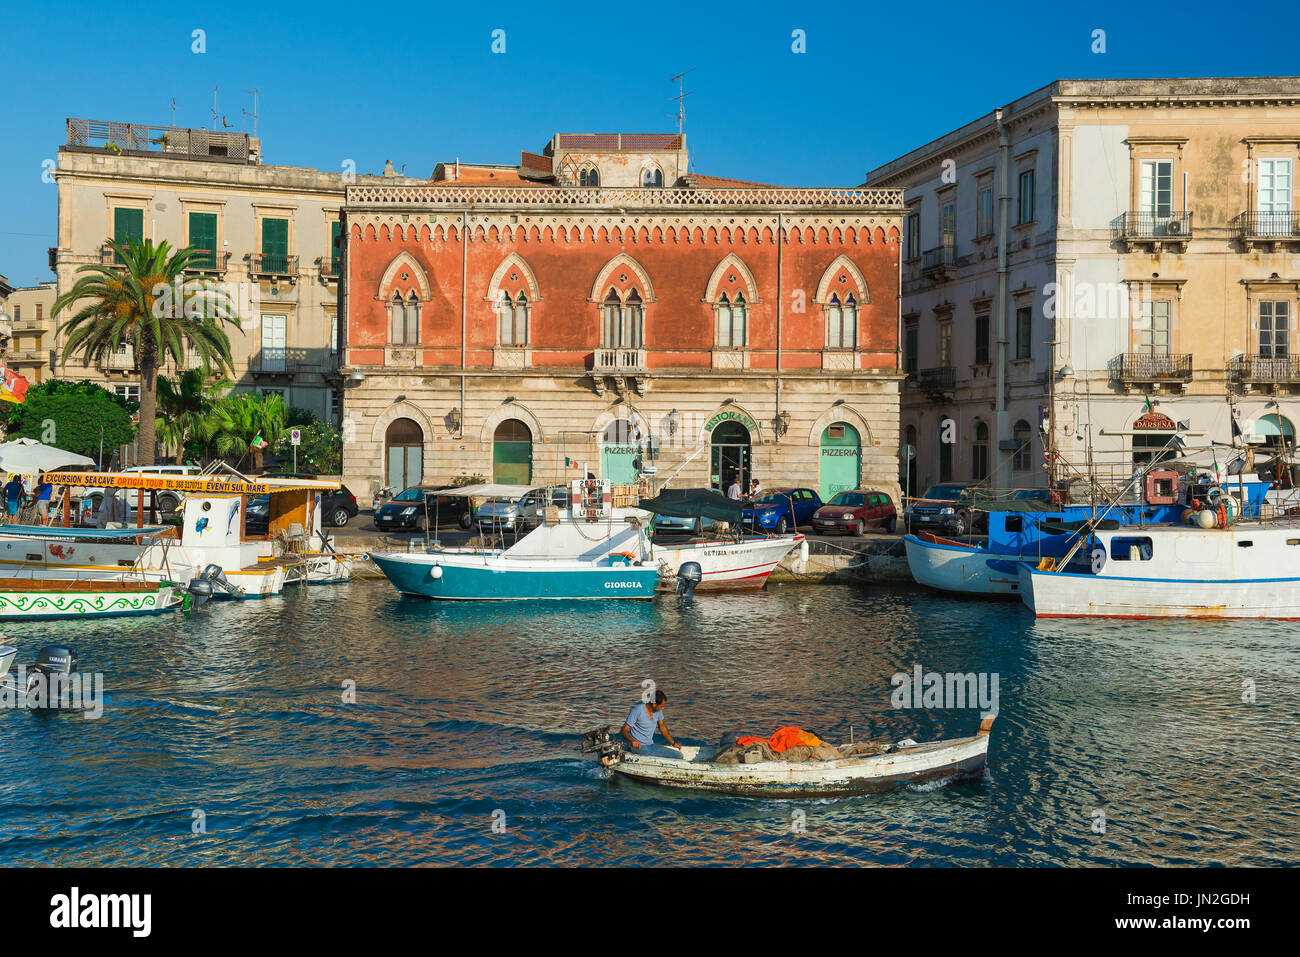 Sicily fishing boat, a fisherman steers his skiff along the Darsena Channel separating the city of Syracuse from Ortigia island, Sicily. - Stock Image